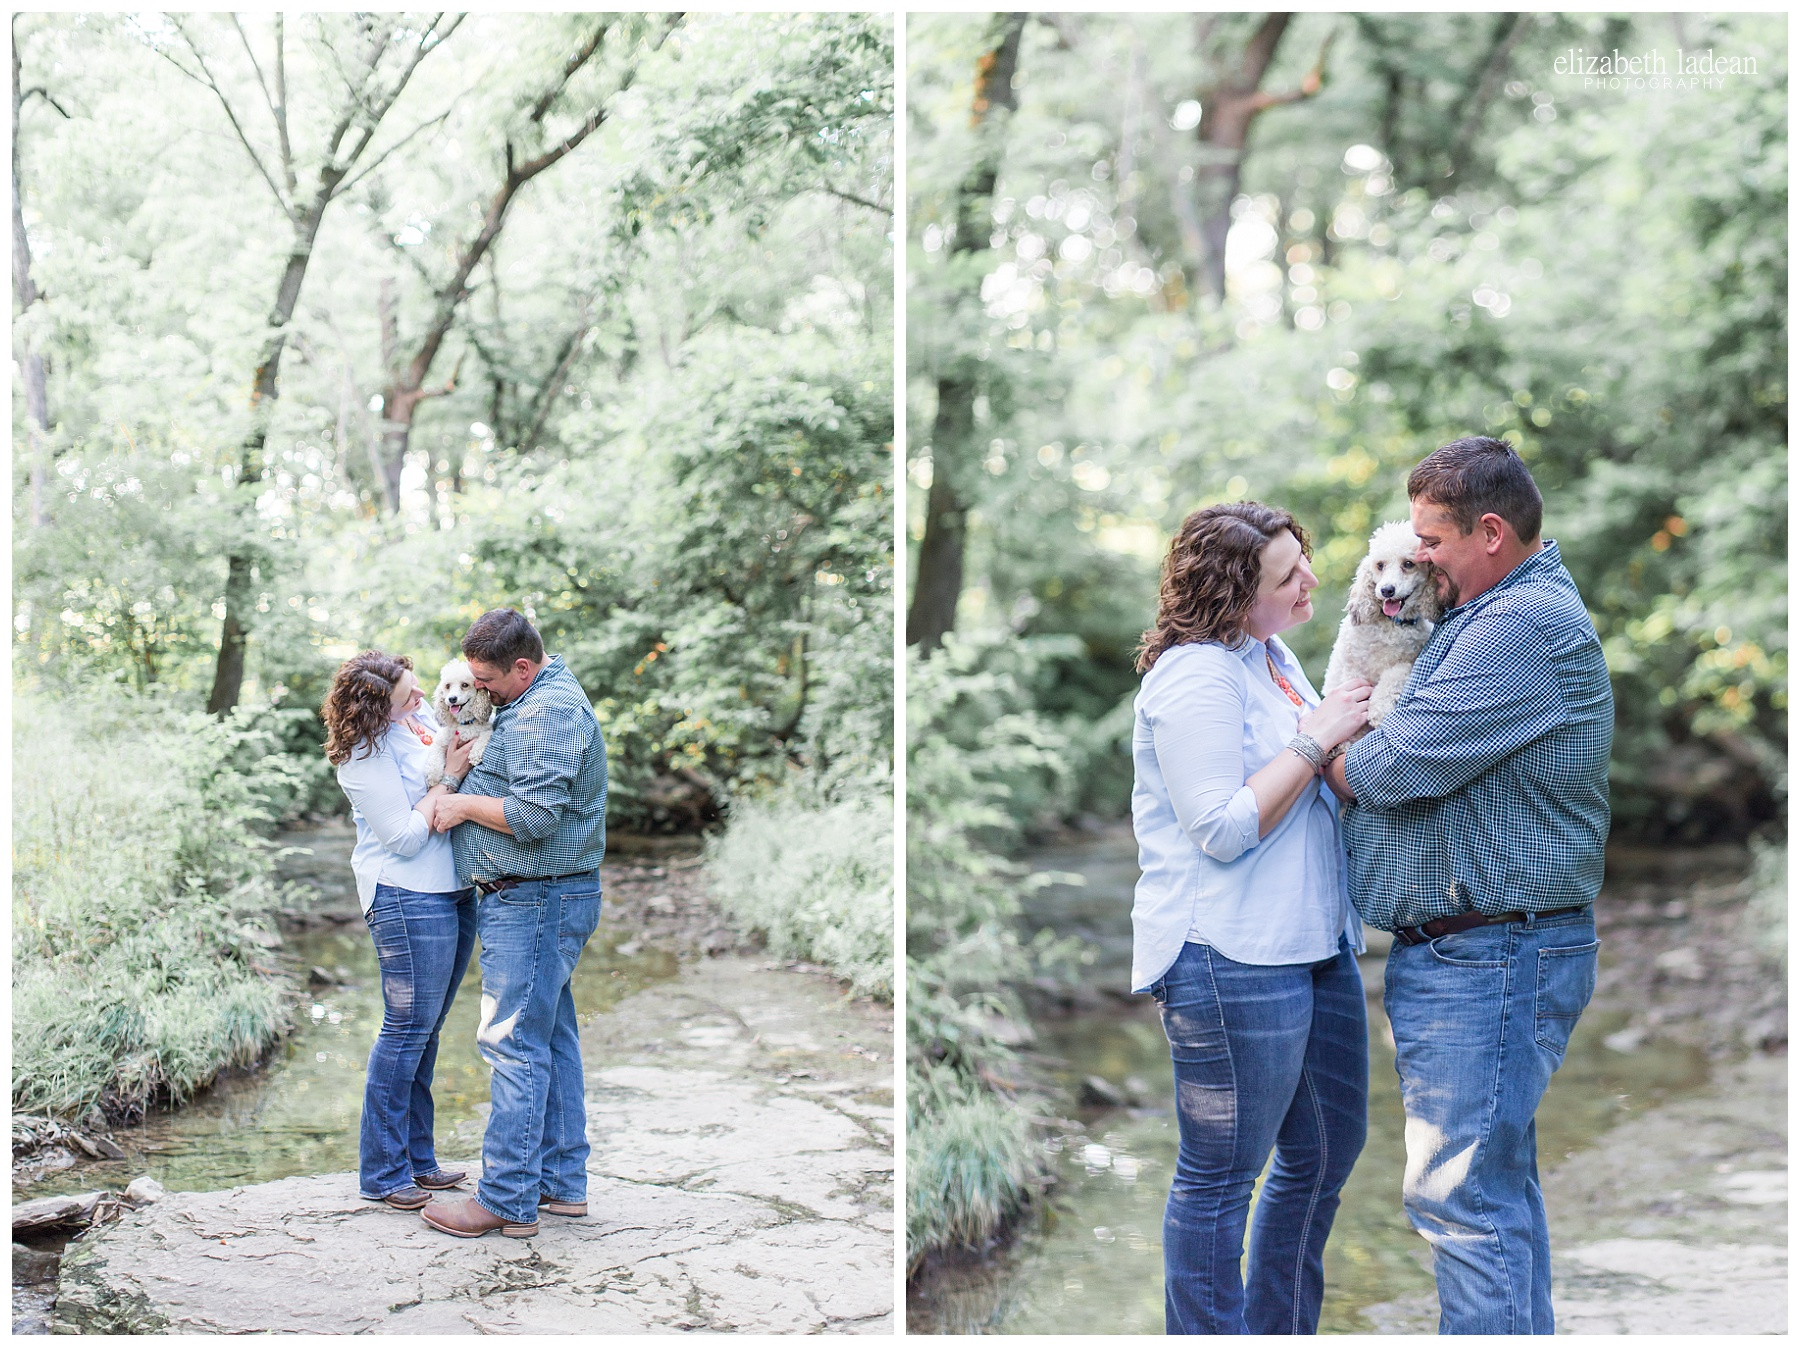 Kansas-City-Engagement-Photography-Shawnee-Mission-H+JJ2017-Elizabeth-Ladean-Photography-photo_1925.jpg